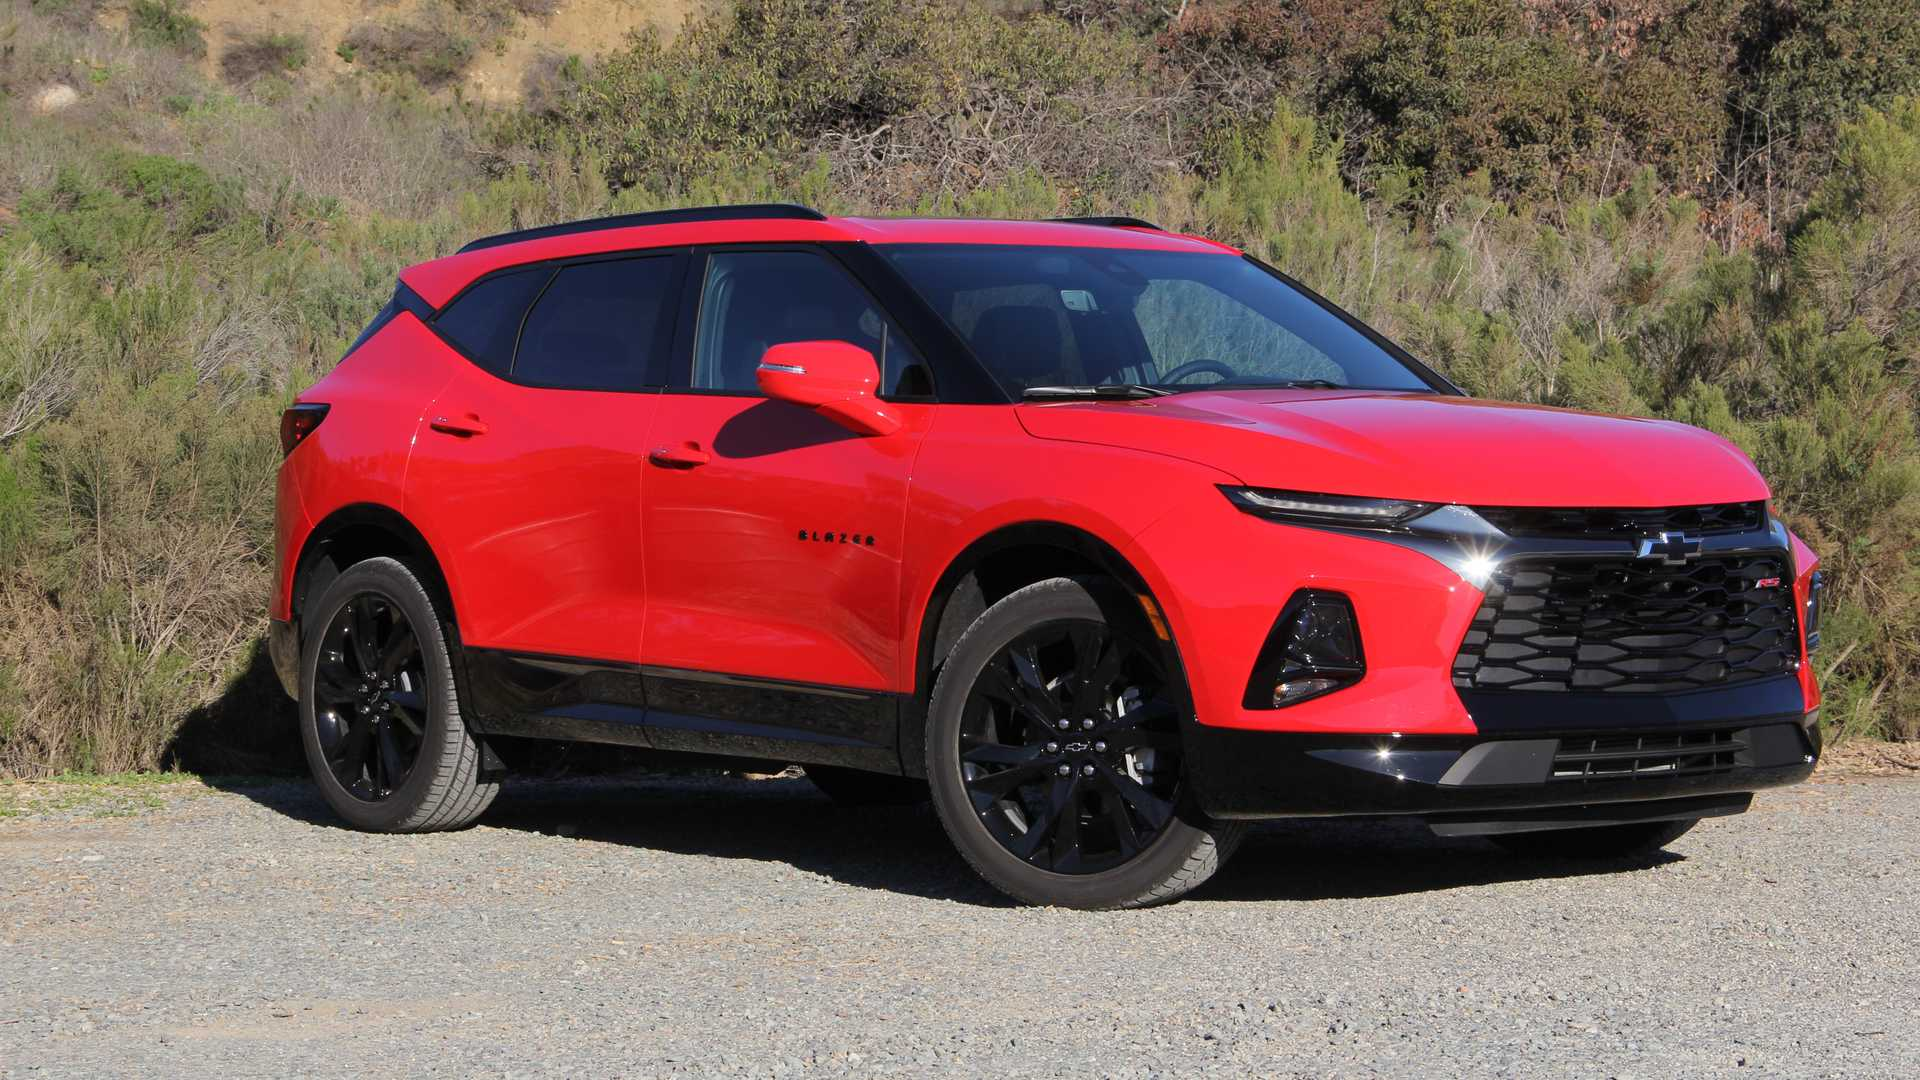 32 The 2020 Chevy Blazer Release Date